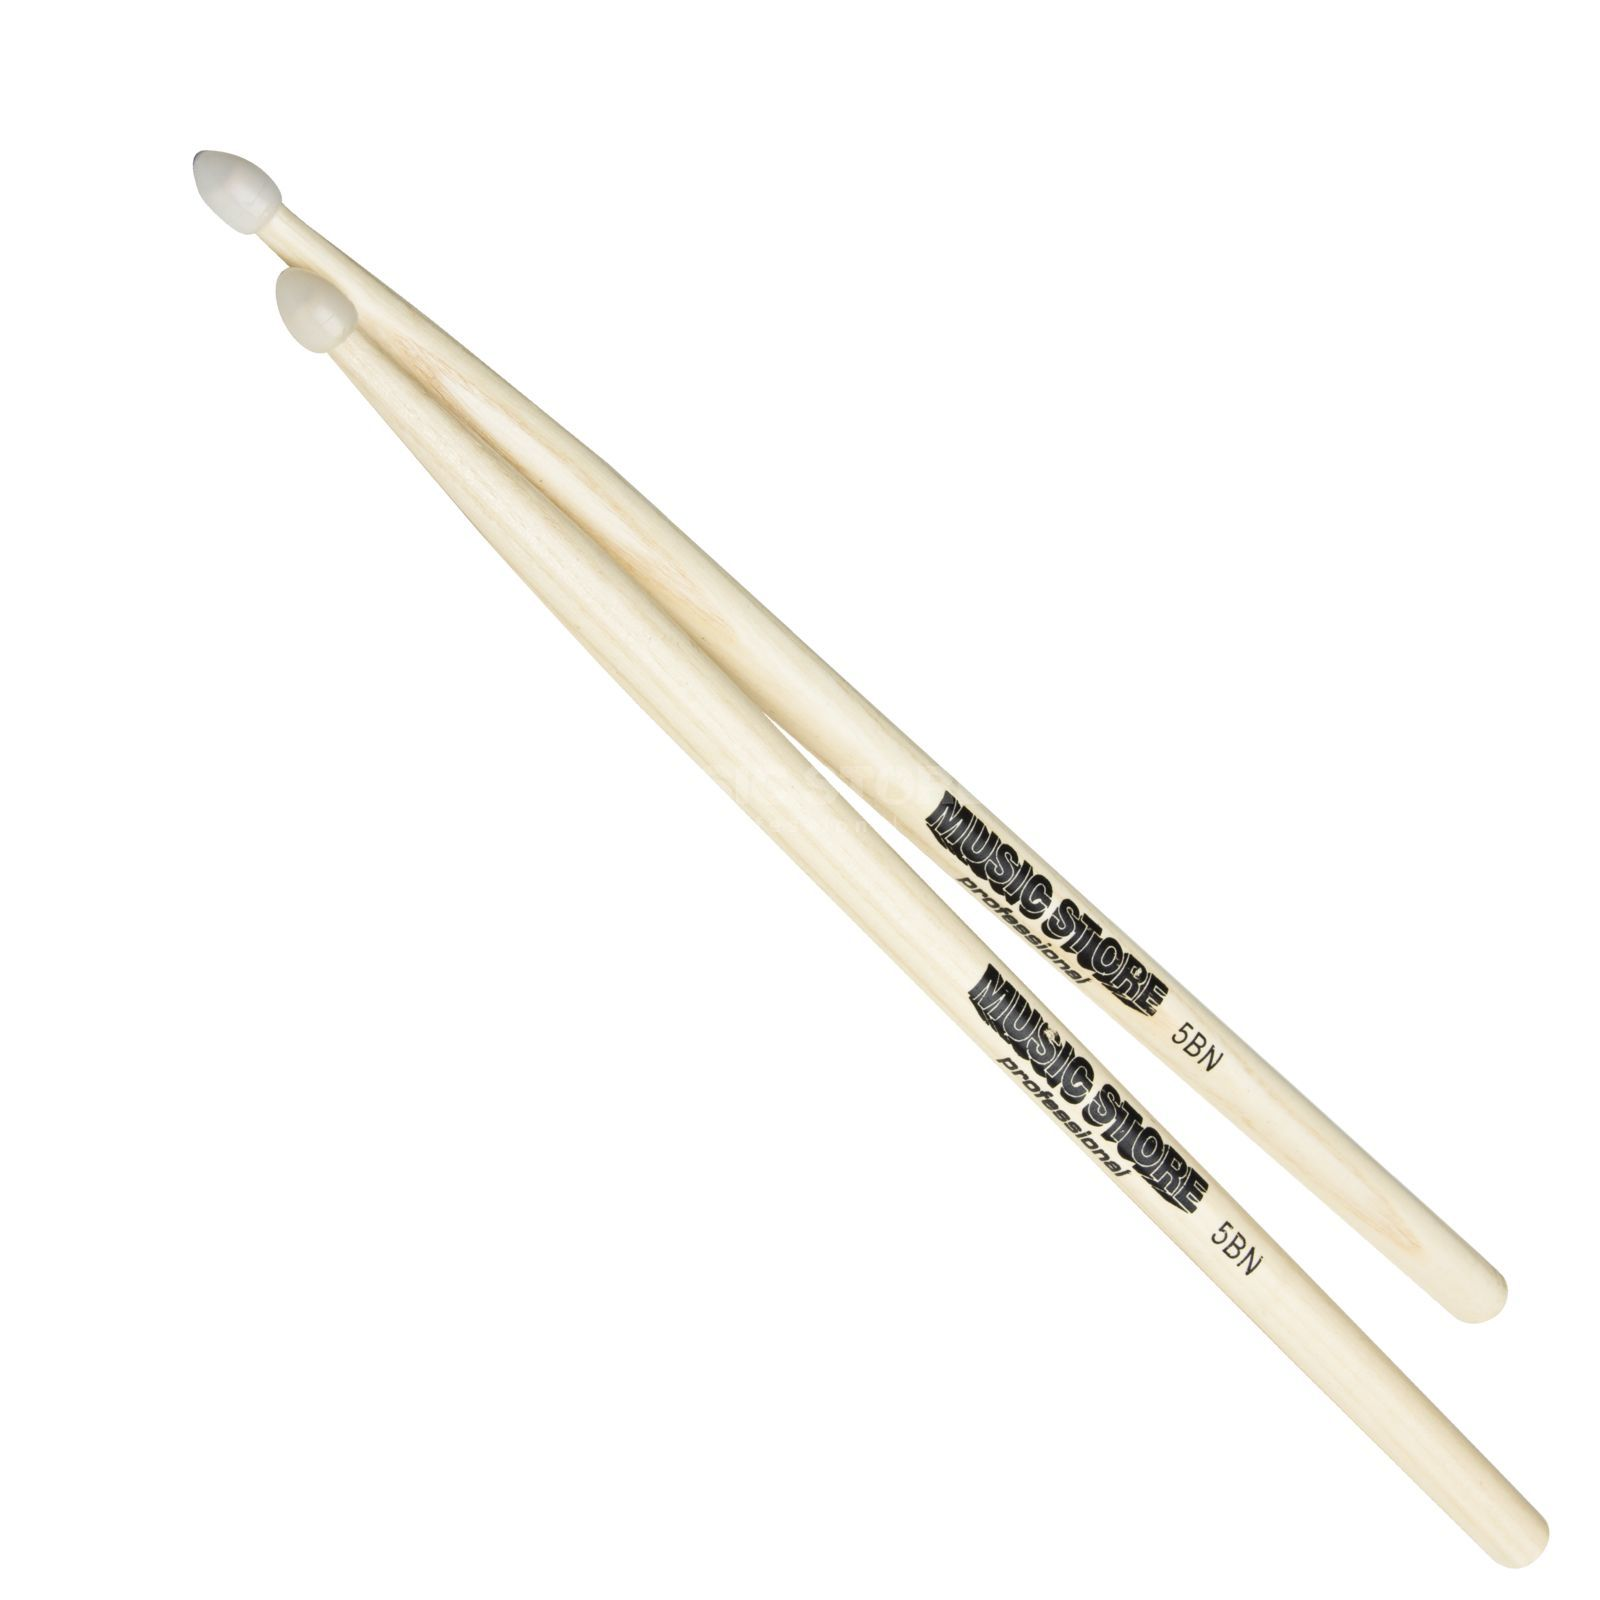 MUSIC STORE 5BN Hickory Sticks, Nylon Tip Produktbild